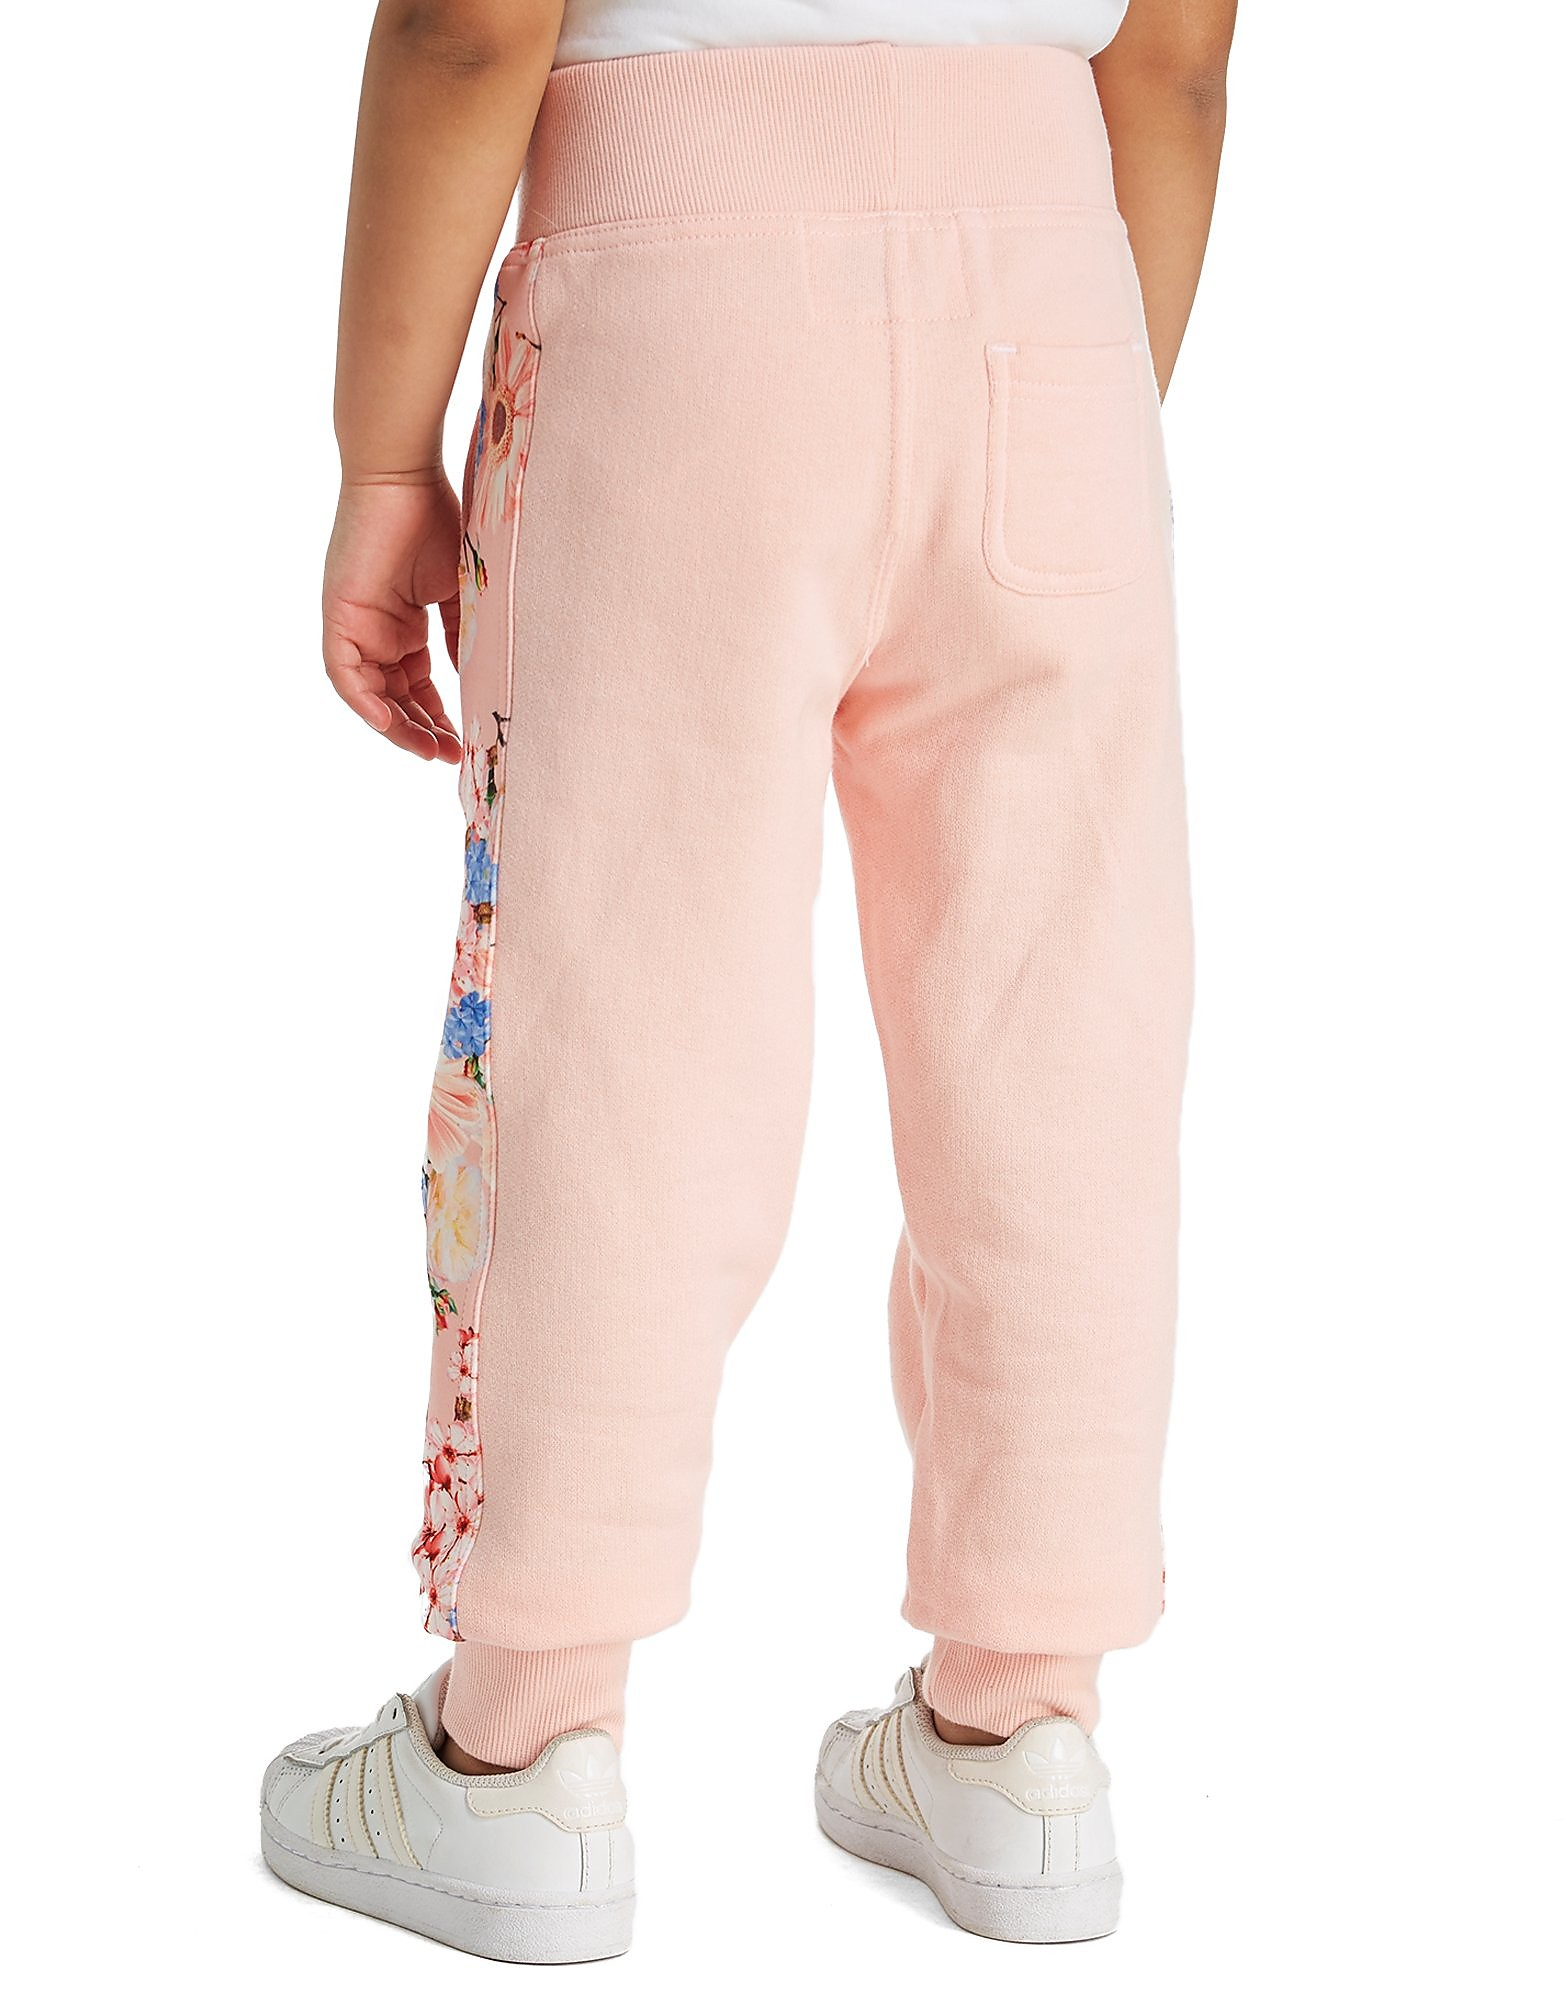 McKenzie Girls' Lydia Pants Children